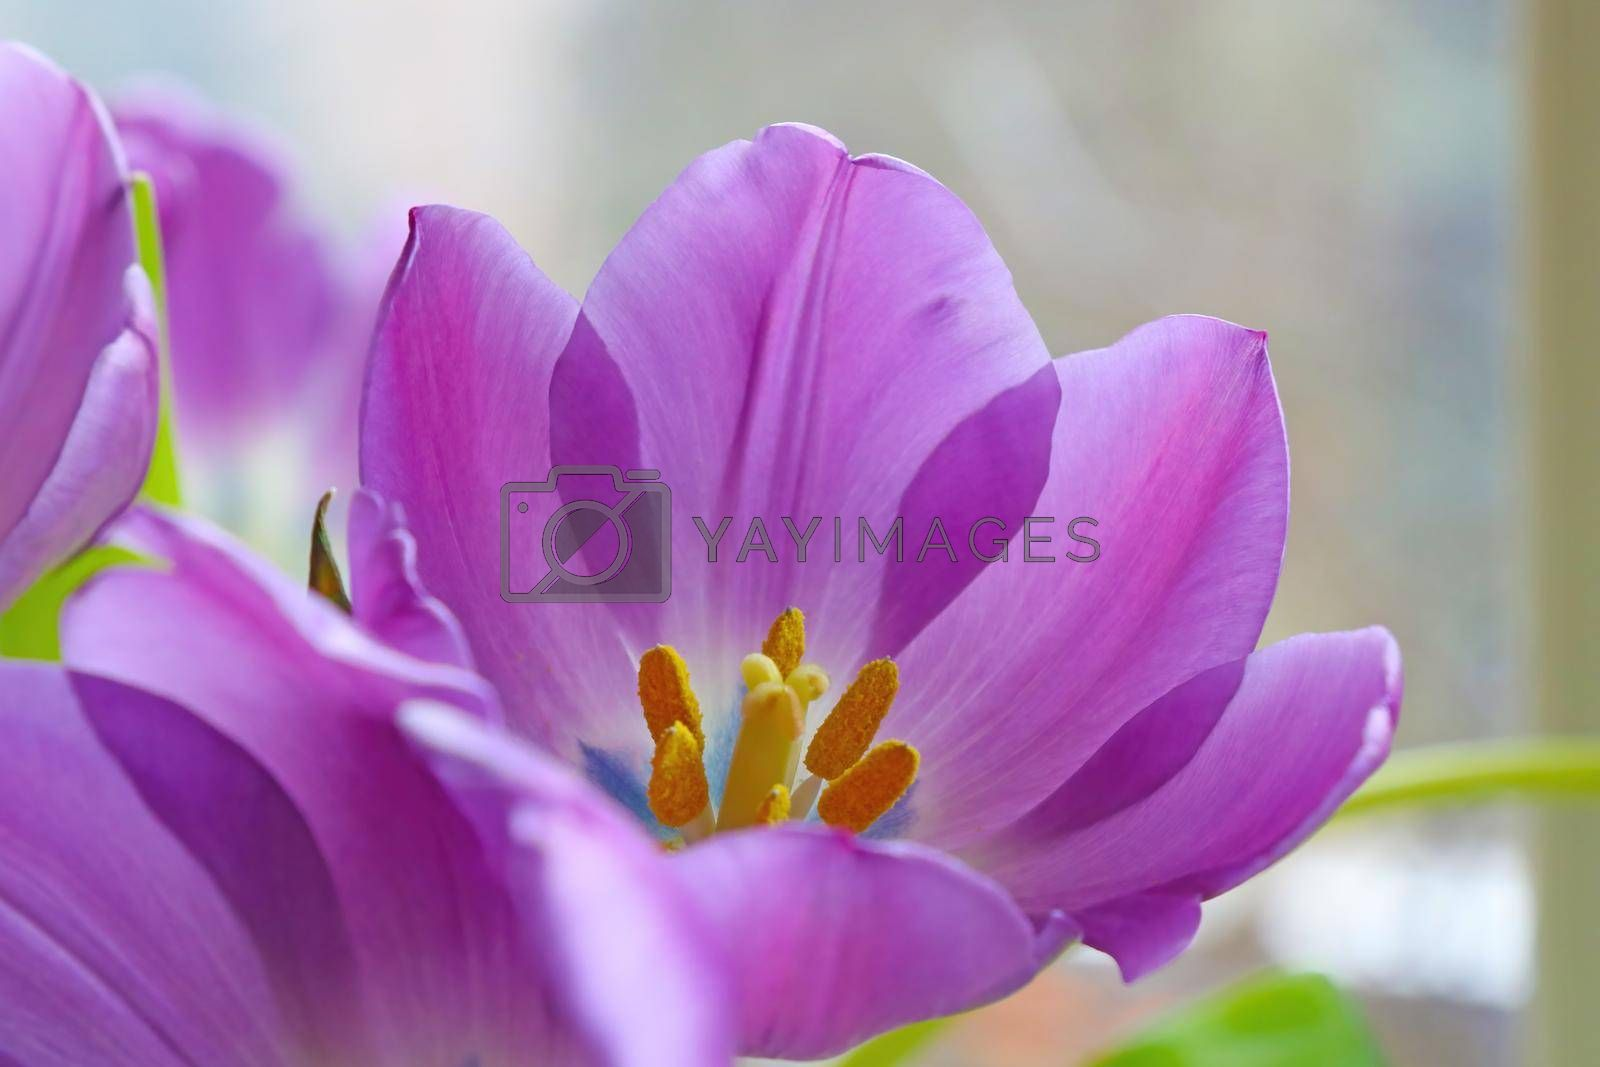 Royalty free image of Close-up of a blossoming tulip in the park. by kip02kas